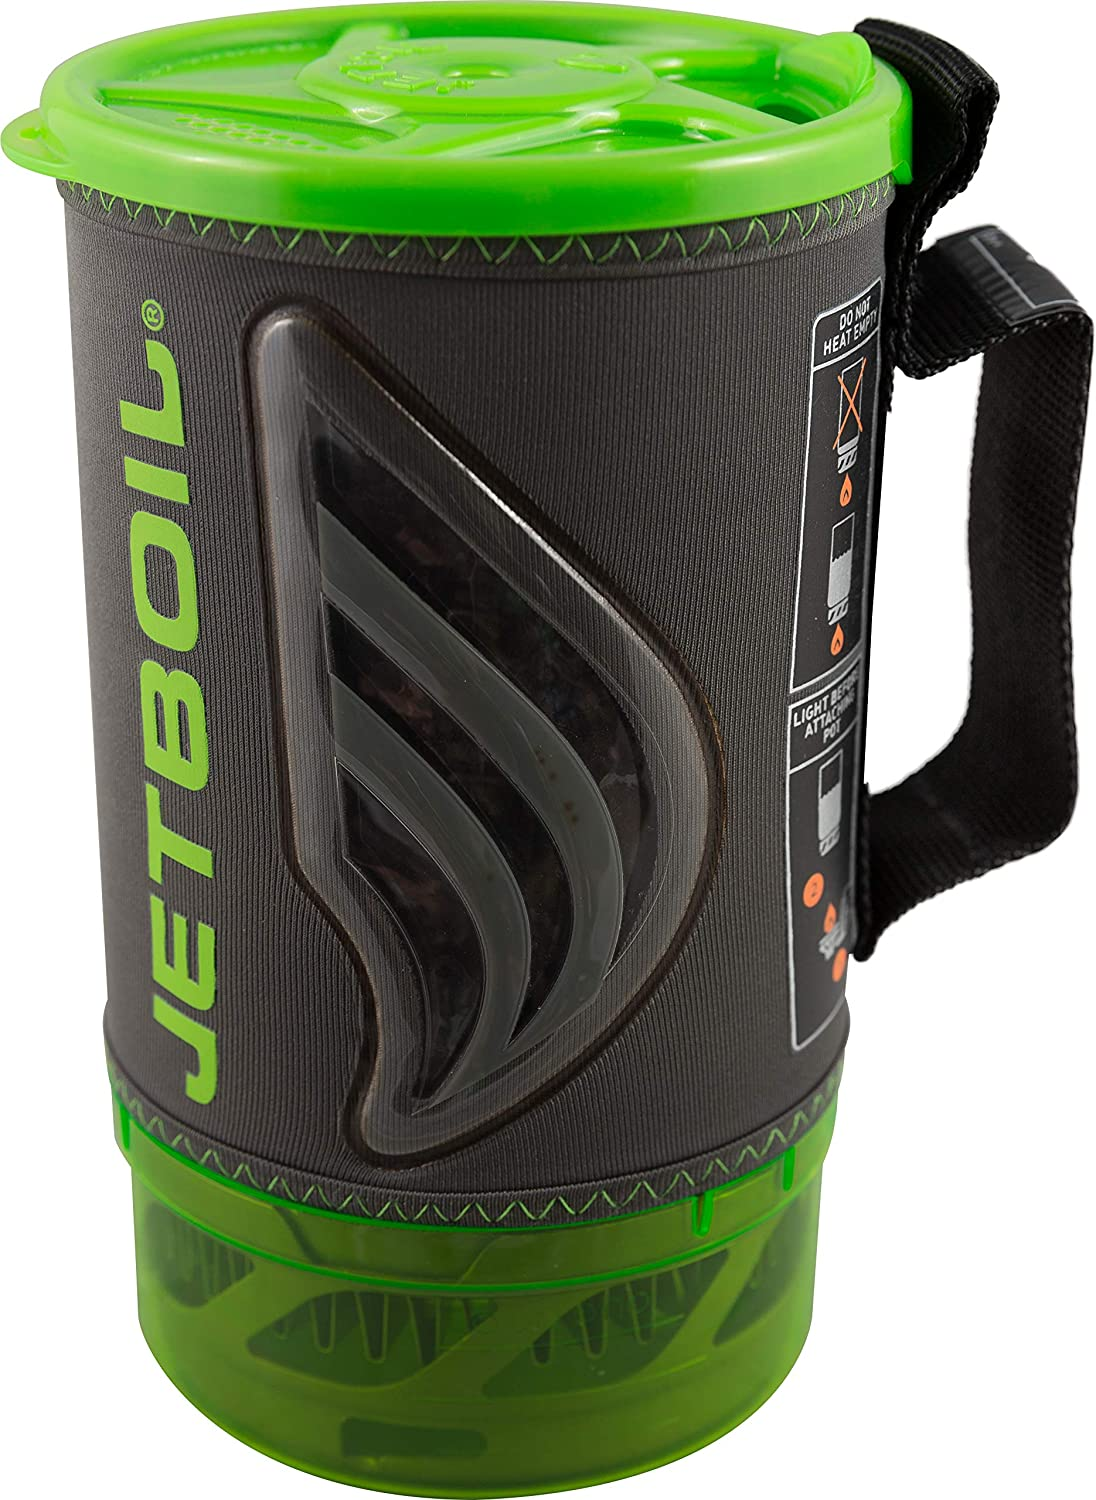 A photo of the Jetboil coffee presser in black and green colors, with the word Jetboil written vertically.